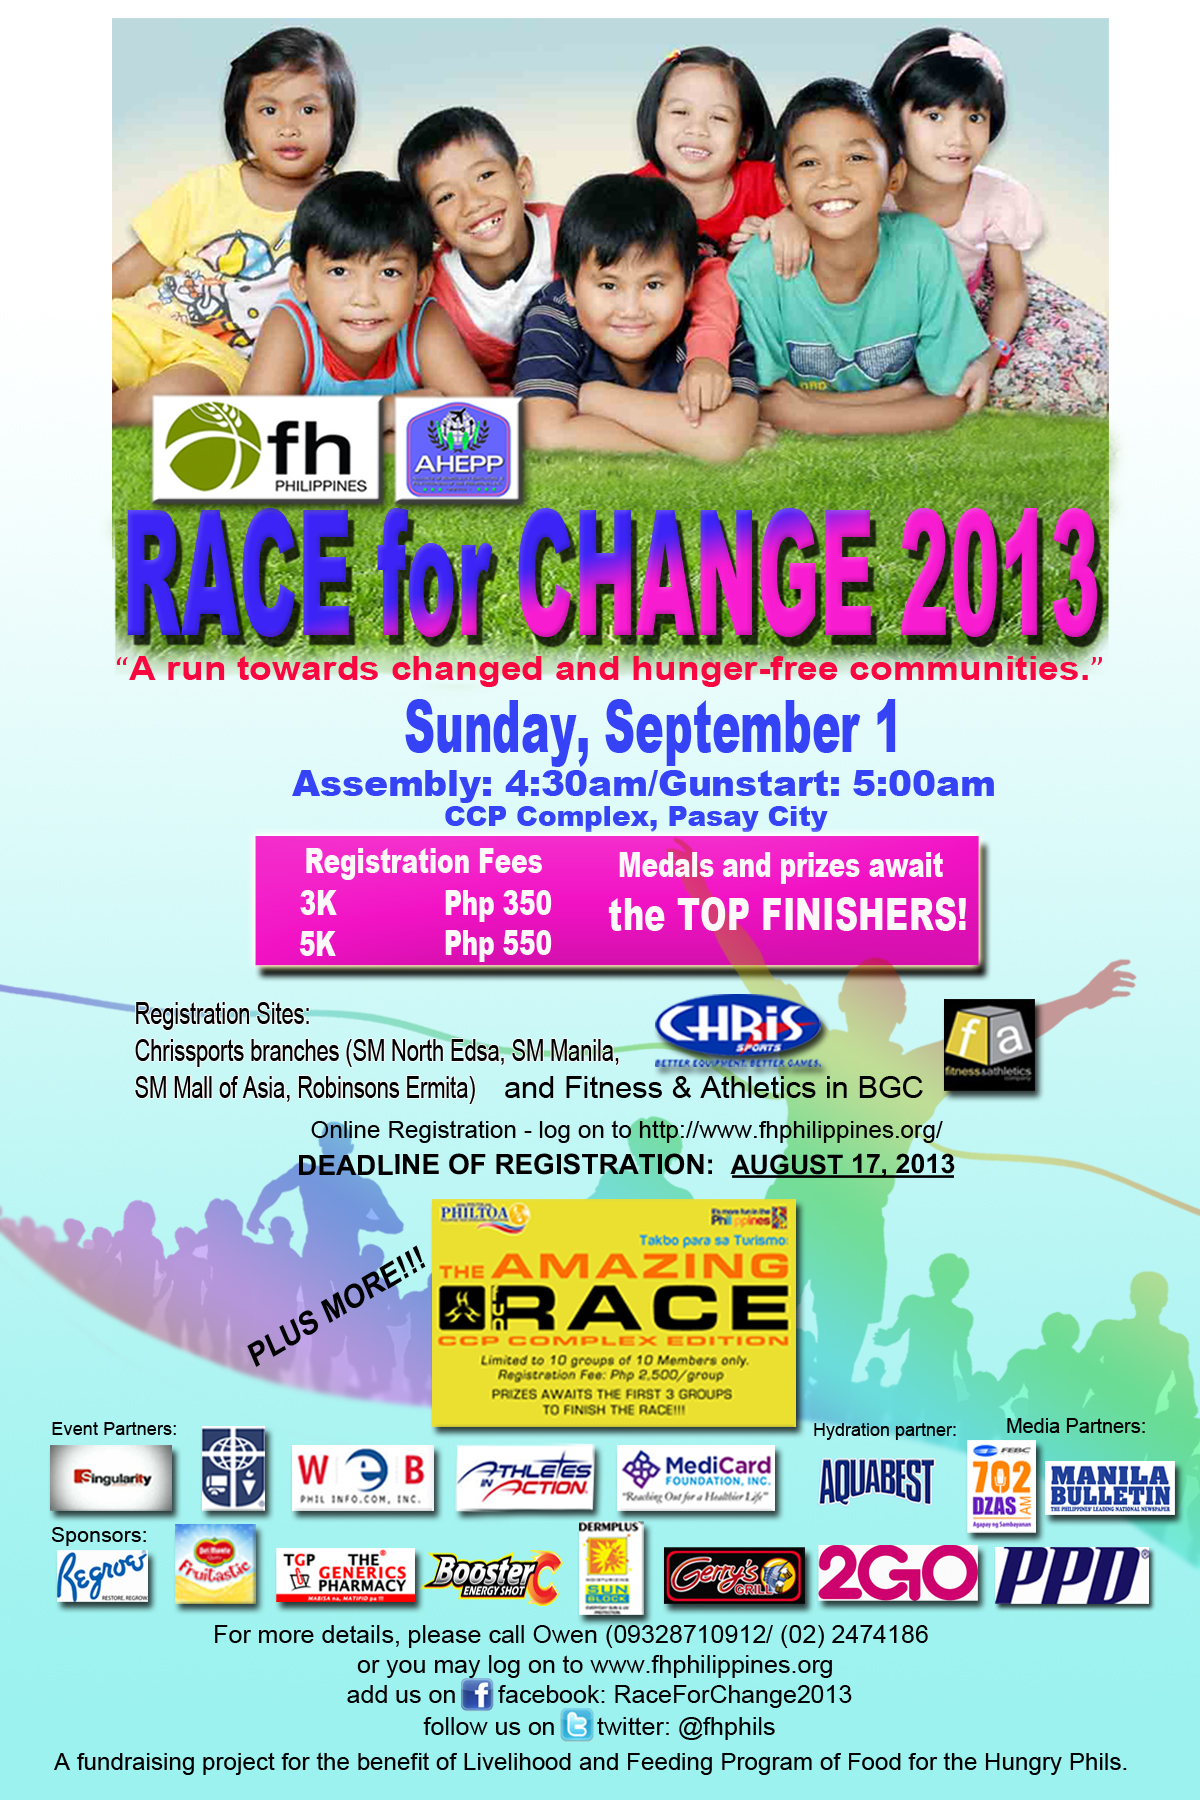 race-for-change-2013-poster-updated